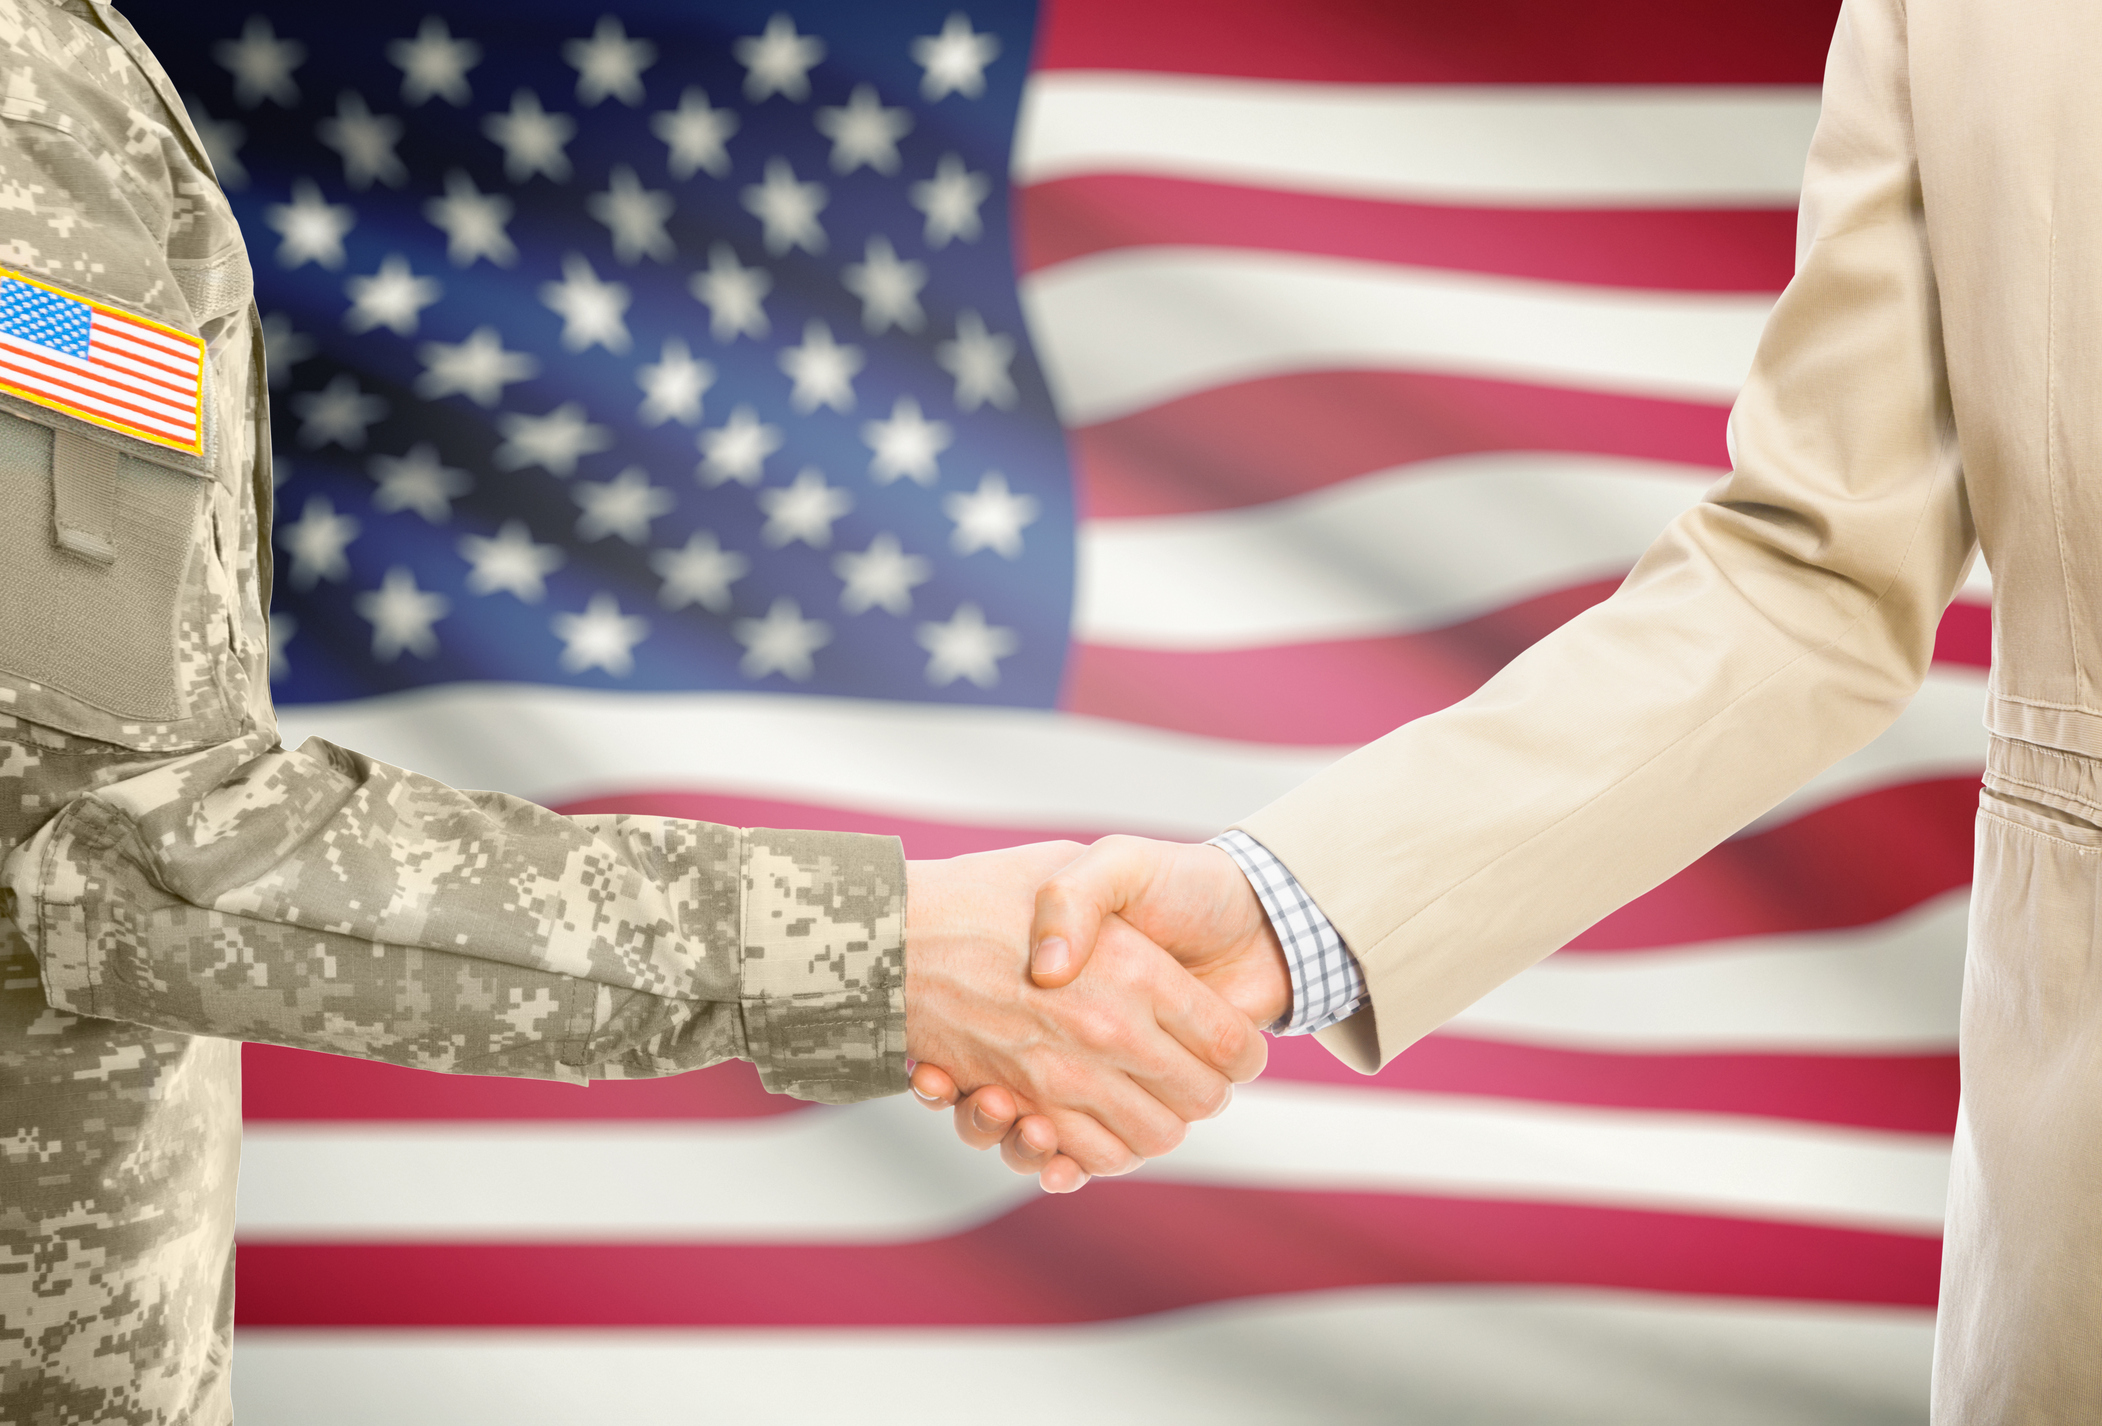 serviceperson shaking hands in front of U.S. flag